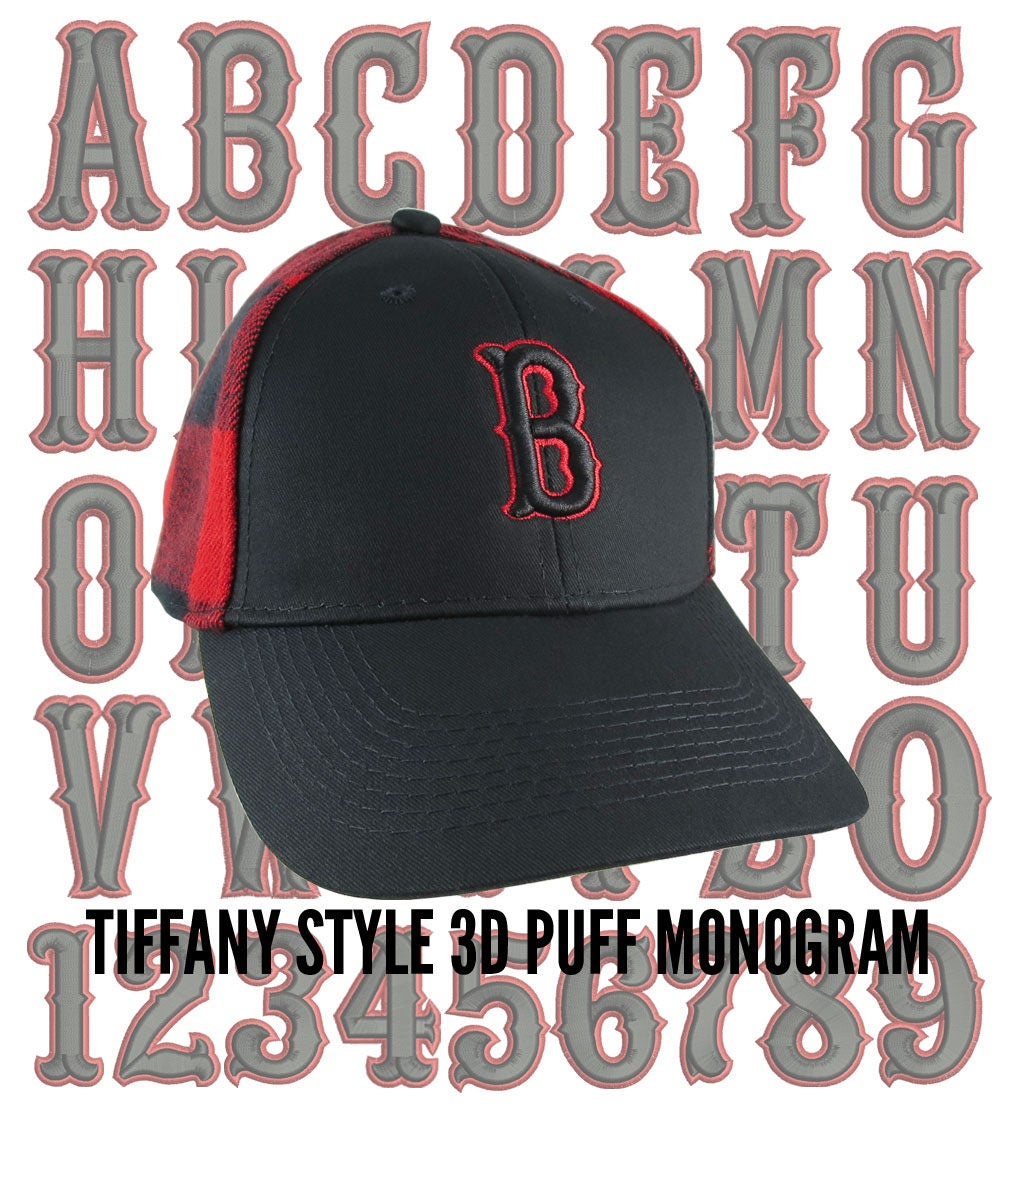 Your Custom Personalized Black and Red 3D Puff Monogram Embroidery on an  Adjustable Stylish Baseball Cap in Black and Buffalo Check Plaid 210725de30f7